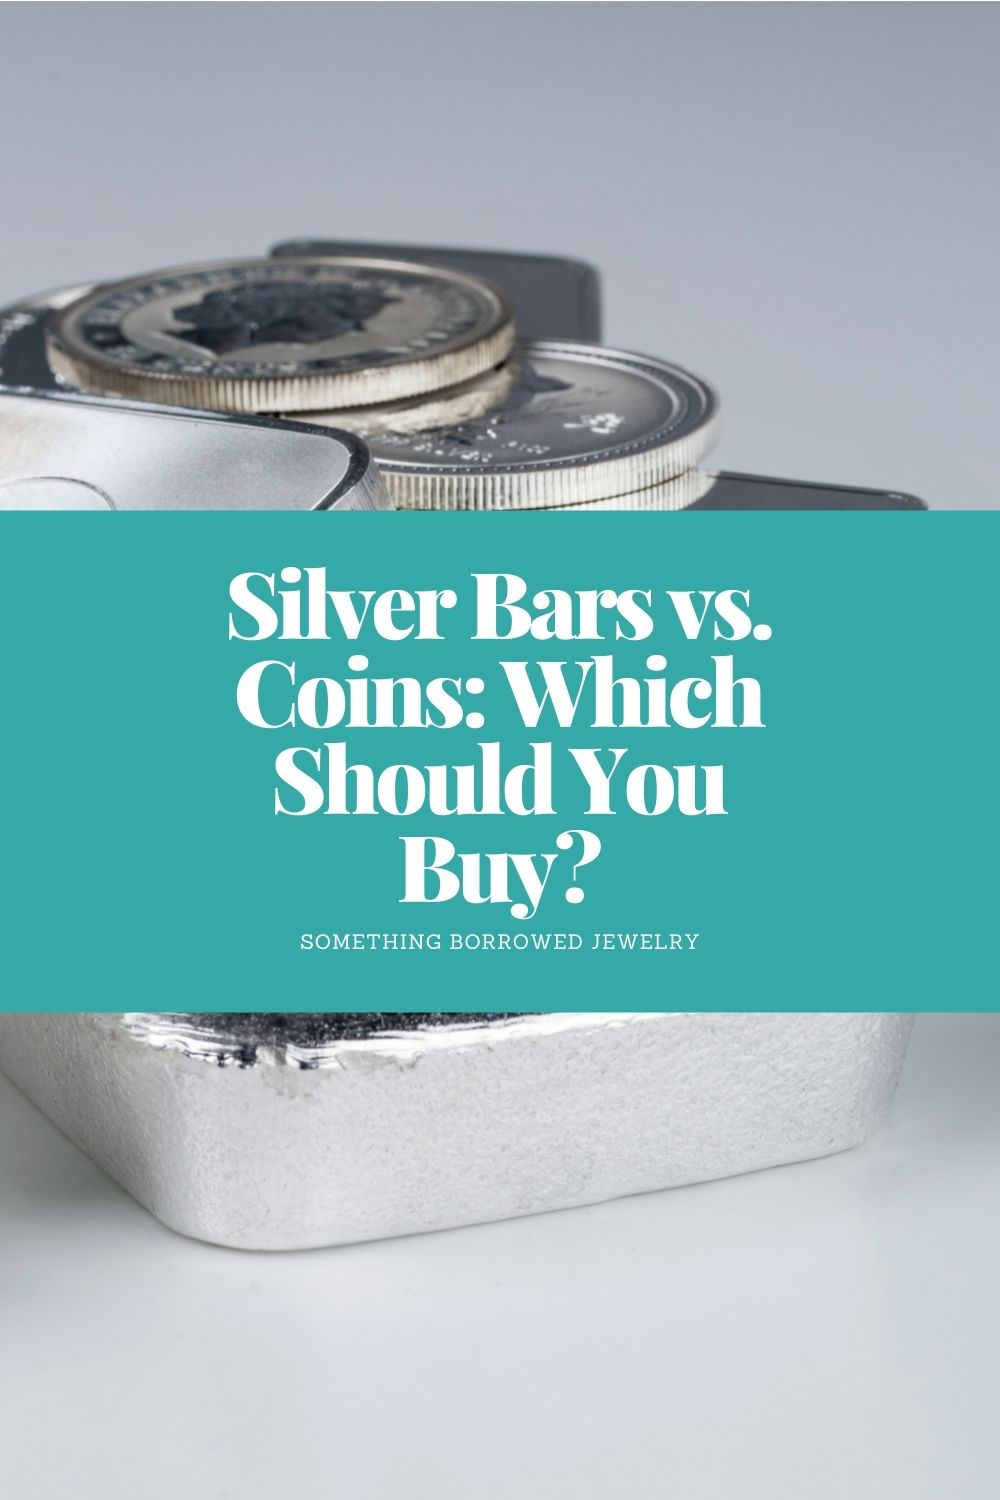 Silver Bars vs. Coins Which Should You Buy pin 2